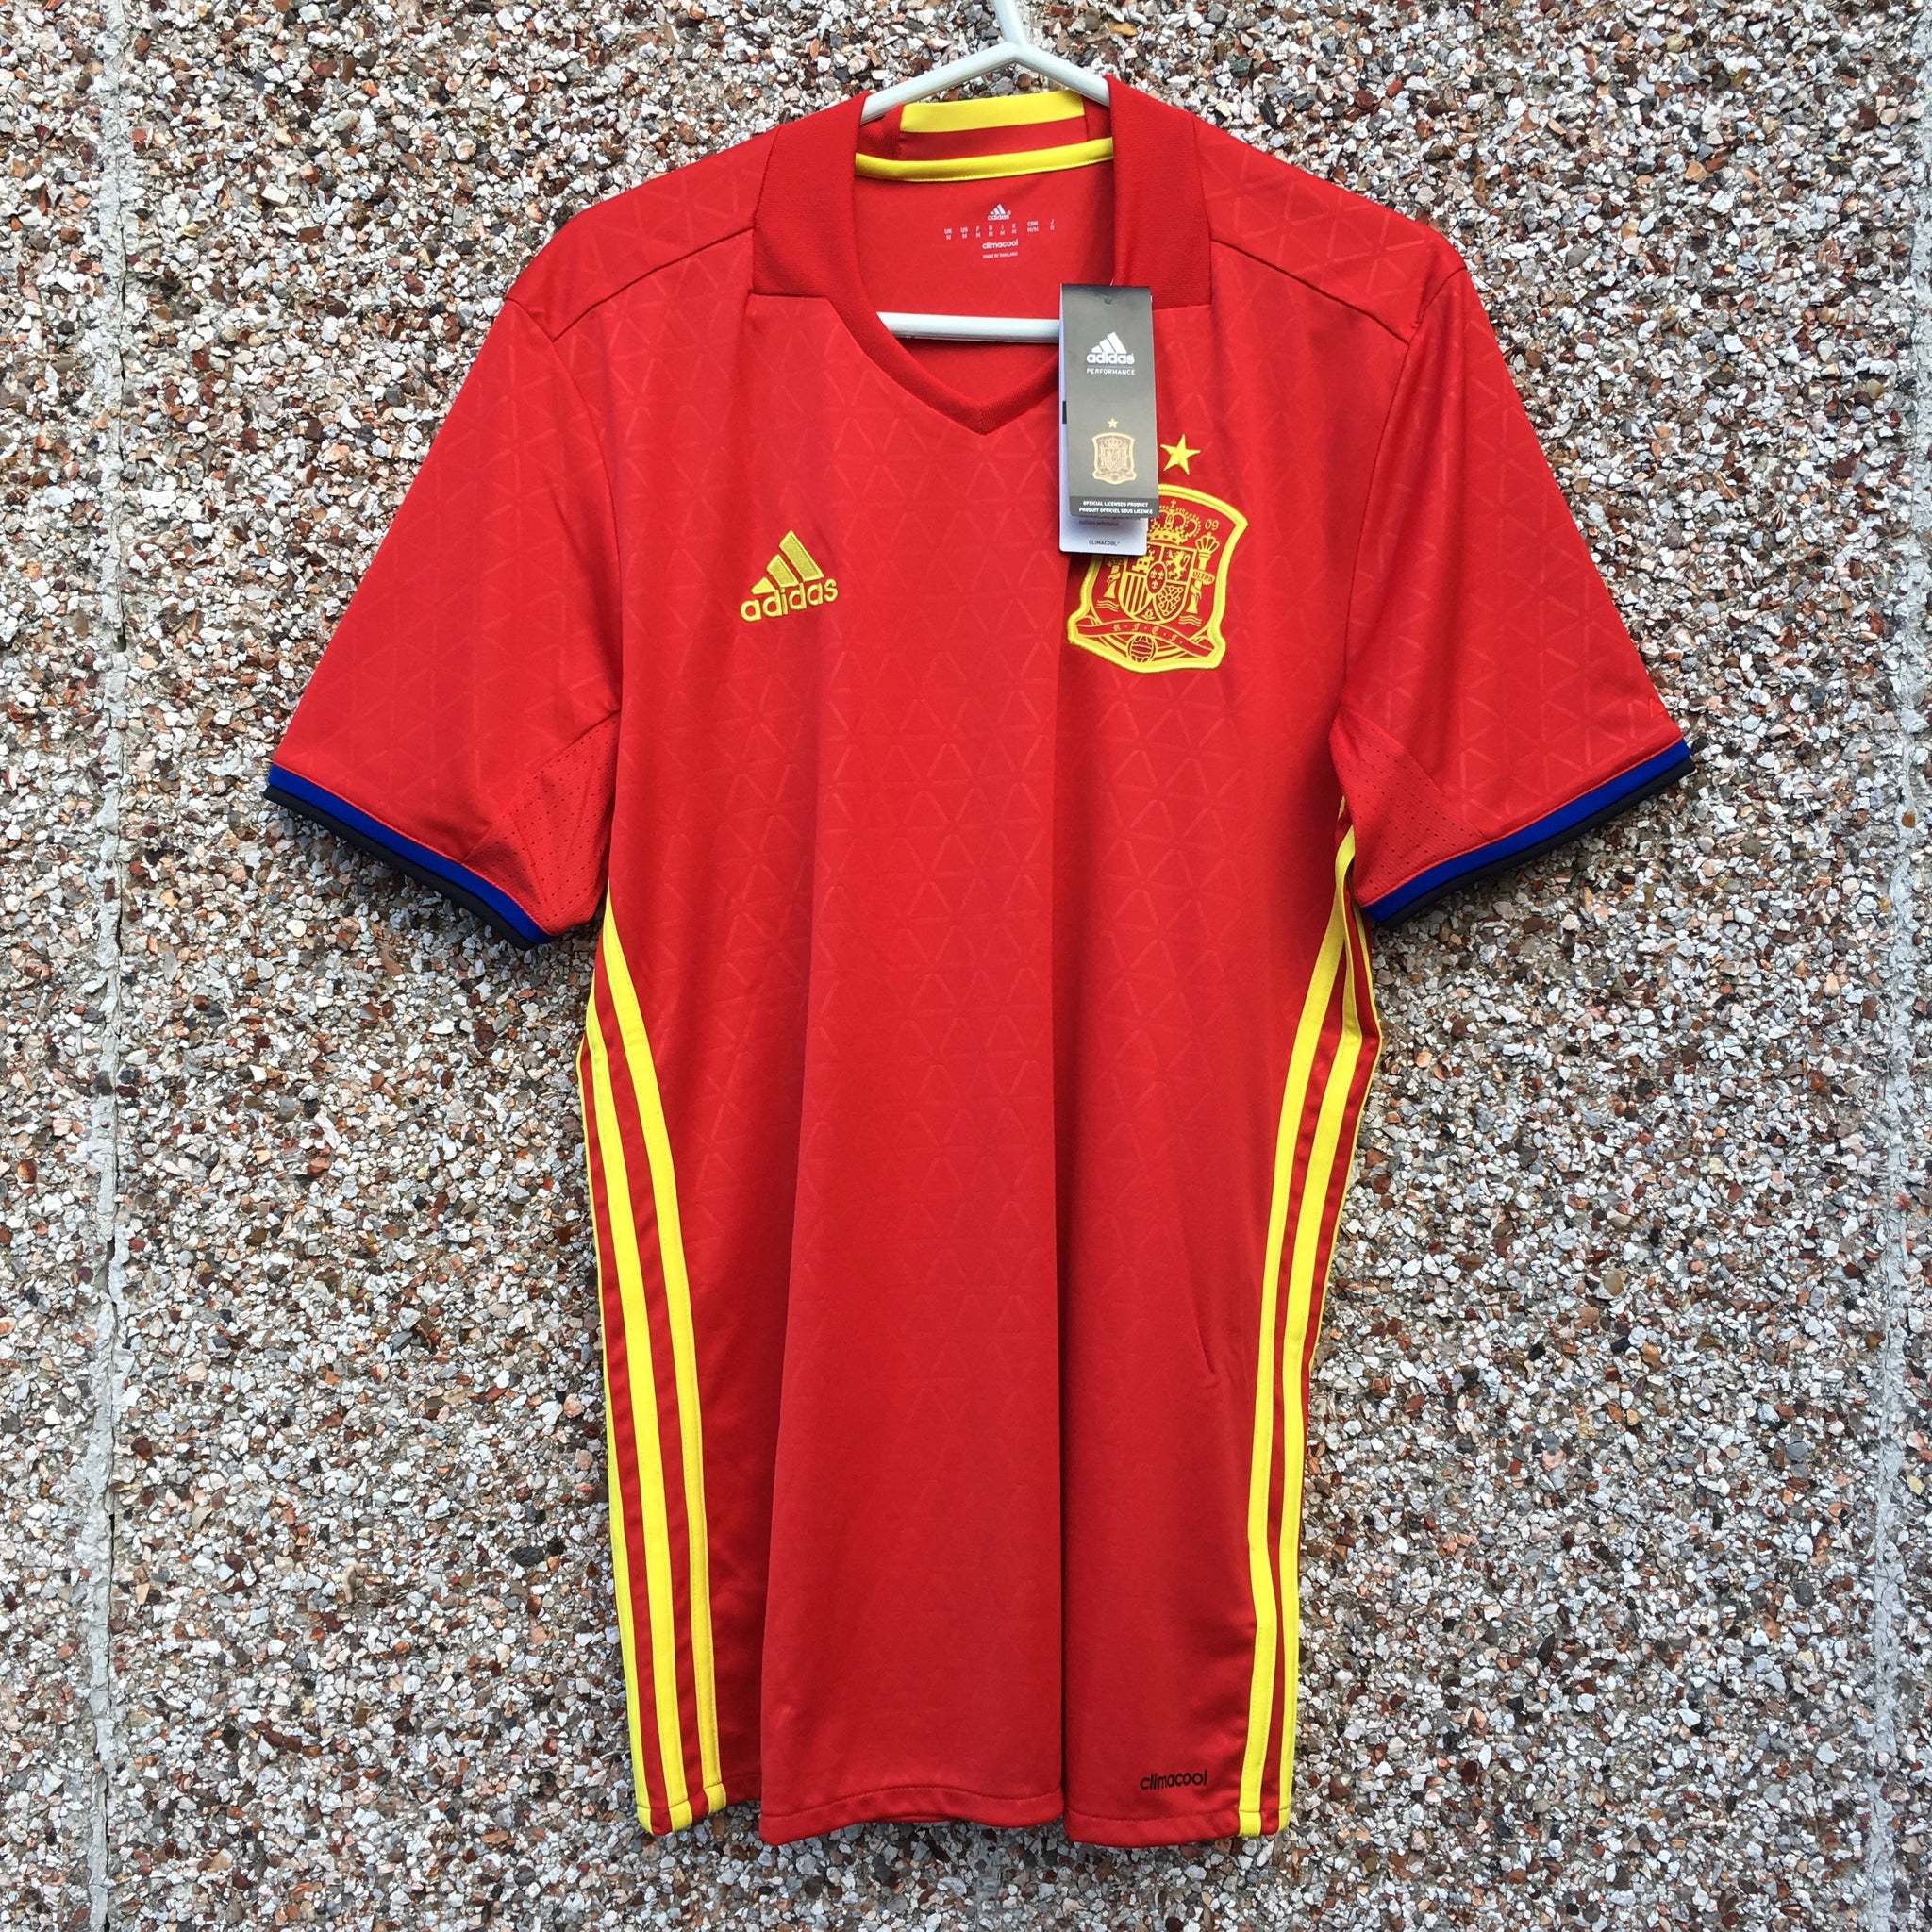 ce74f8c6a 2016 2017 Spain home Football Shirt - M – buysellfootballshirts.co.uk